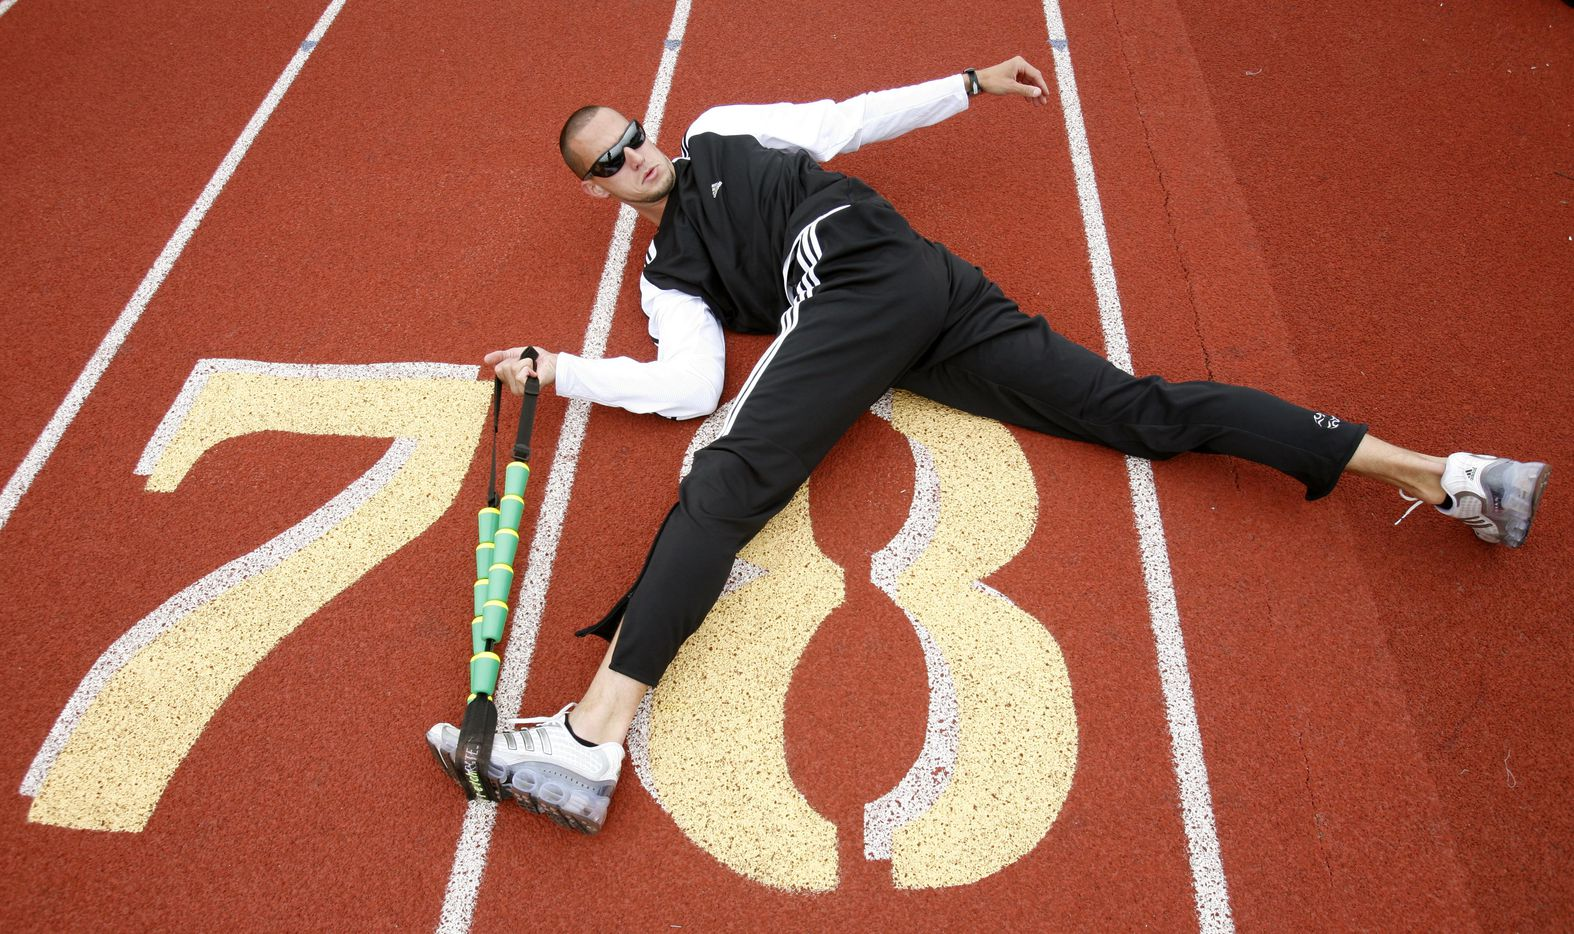 From 2007: Jeremy Wariner stretches before working out at the Baylor University Hart-Patterson Track and Field Complex, Texas Monday April 9, 2007.  He is preparing for the 2008 Summer Olympics in Beijing, China.